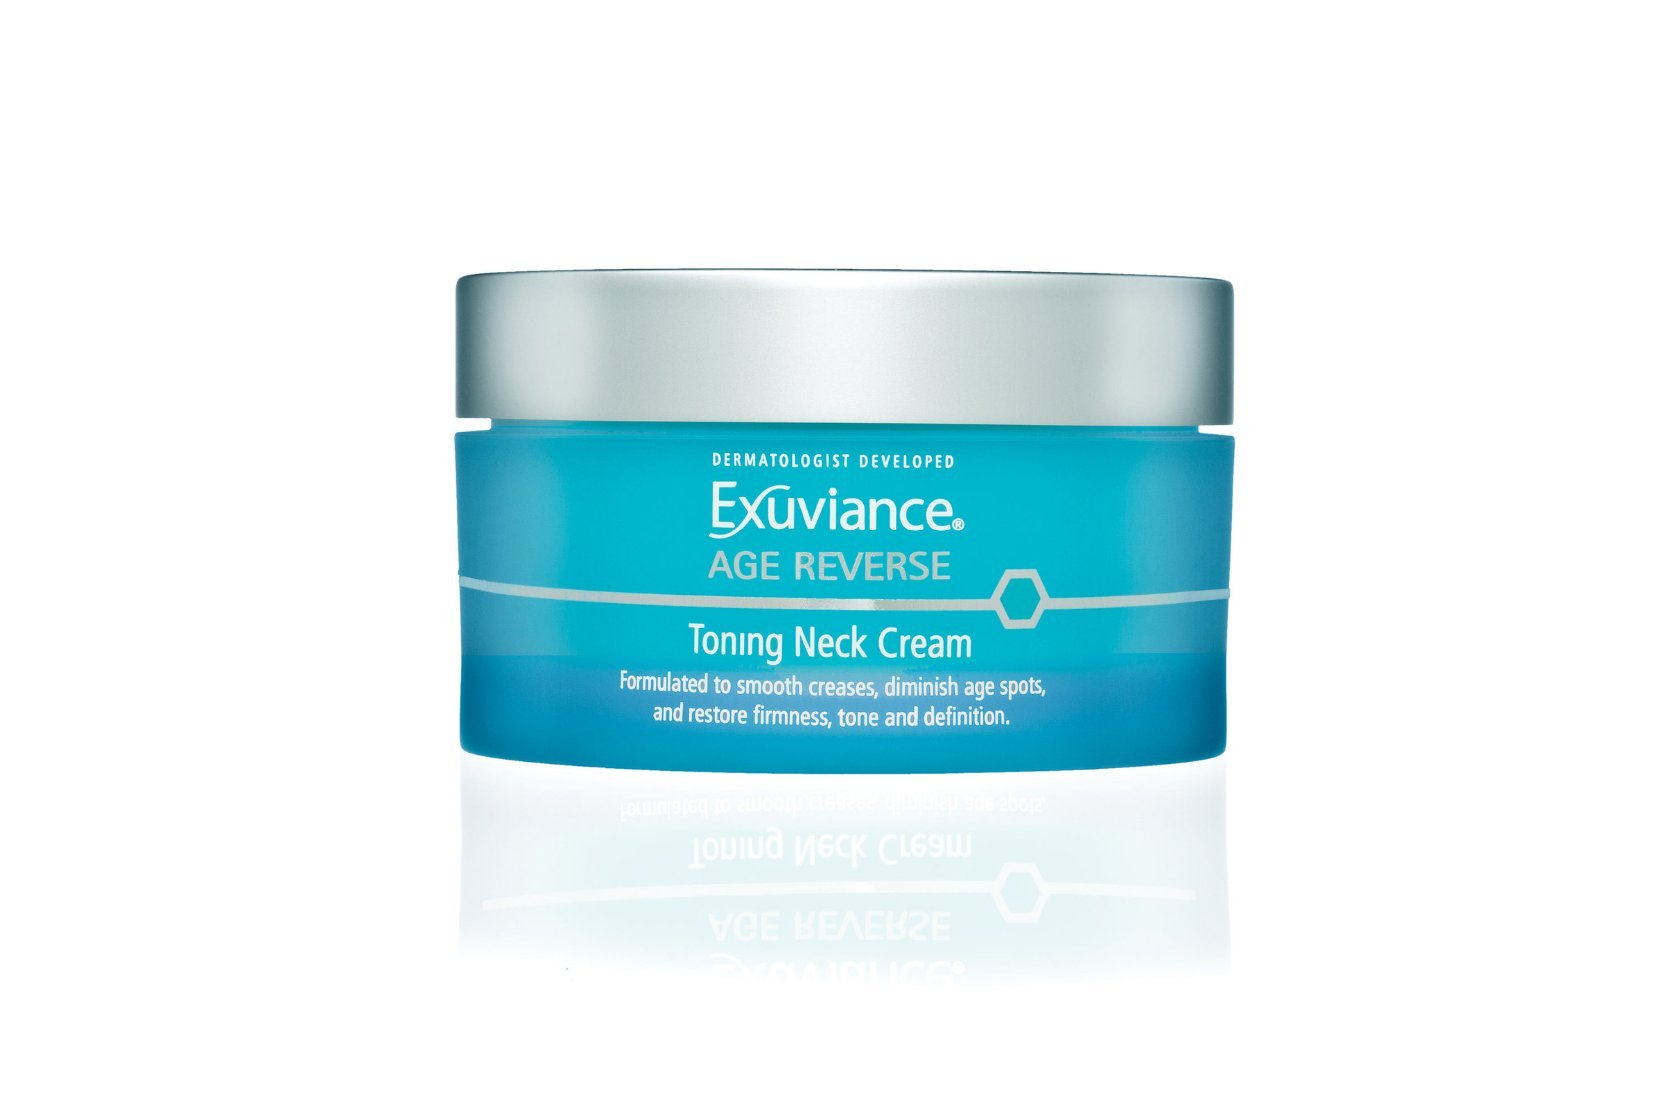 Exuviance Age Reverse Toning Neck Cream - 4.4 oz by Exuviance (Image #1)